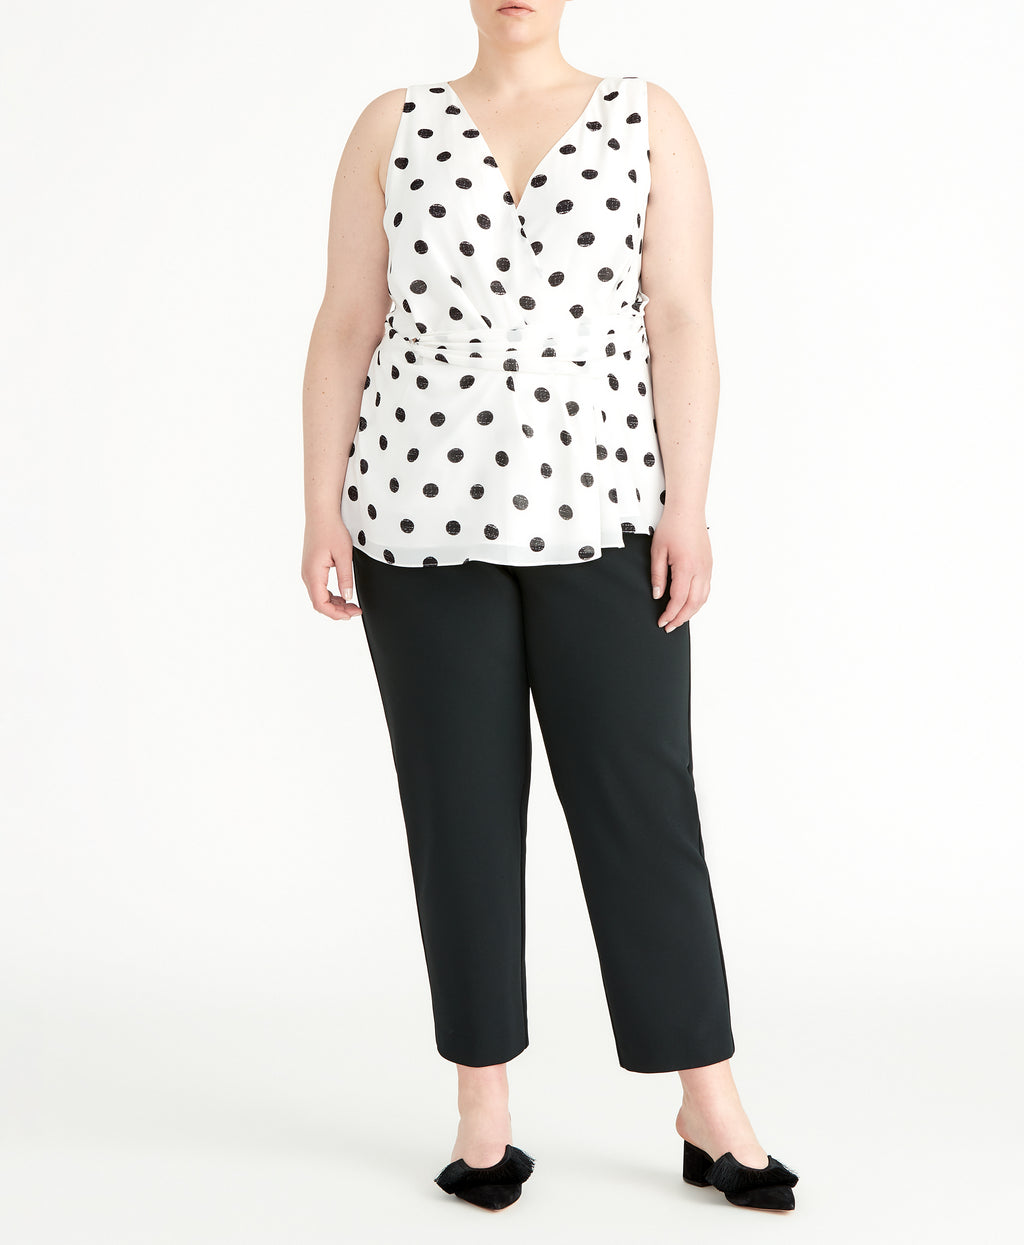 Polka Dot Twist Tank | Polka Dot Twist Tank